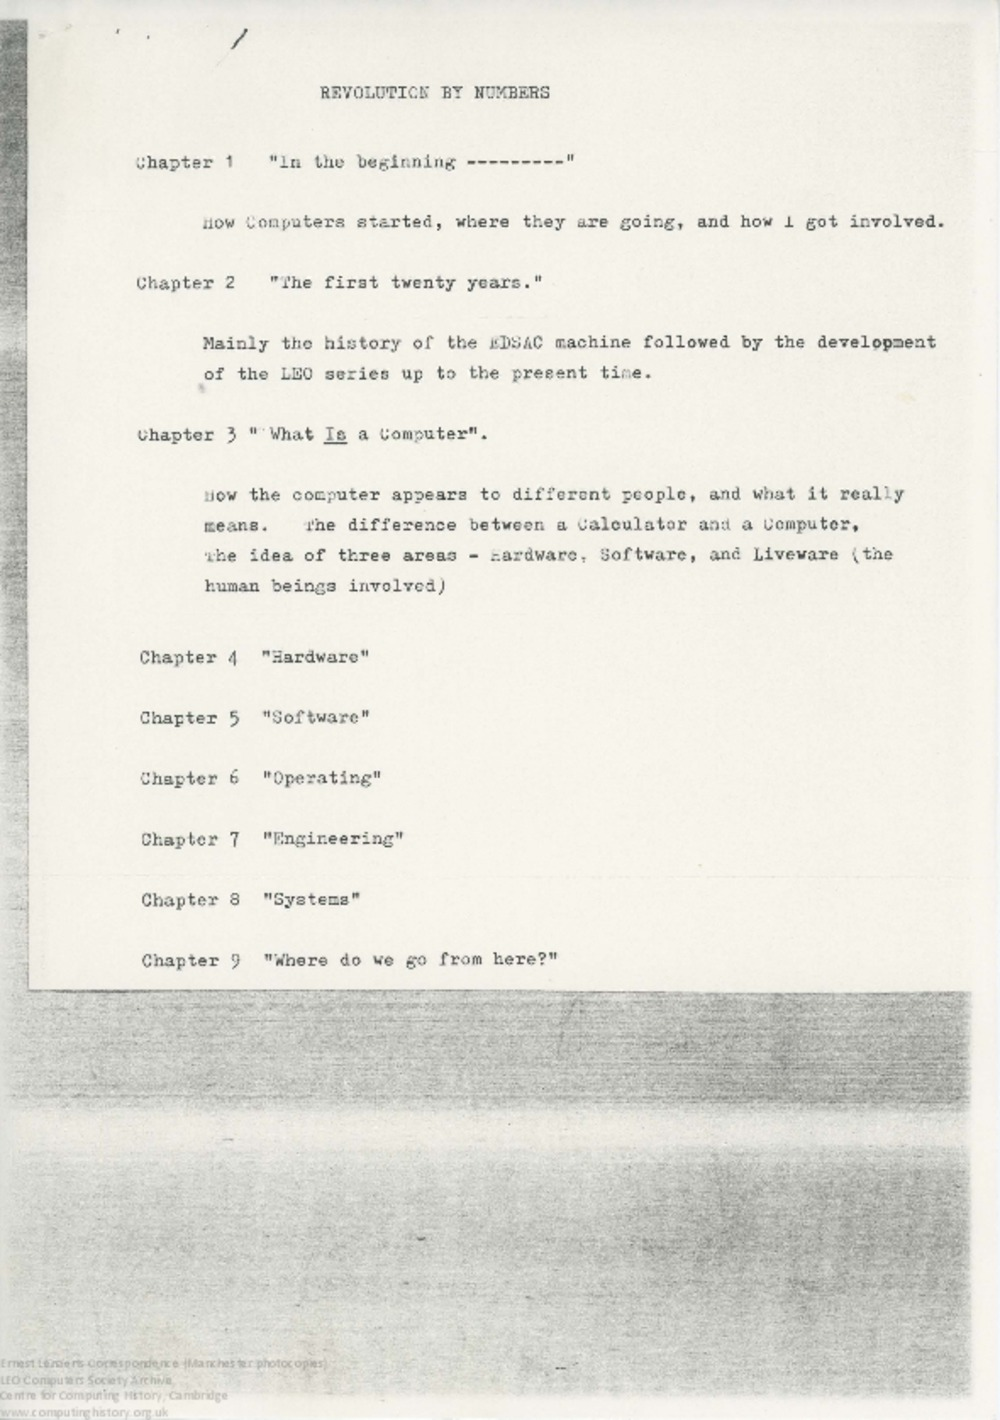 Article: 62899 Lenaerts: Revolution by Numbers, Chap 4. Hardware (draft), 30th Jul 1971